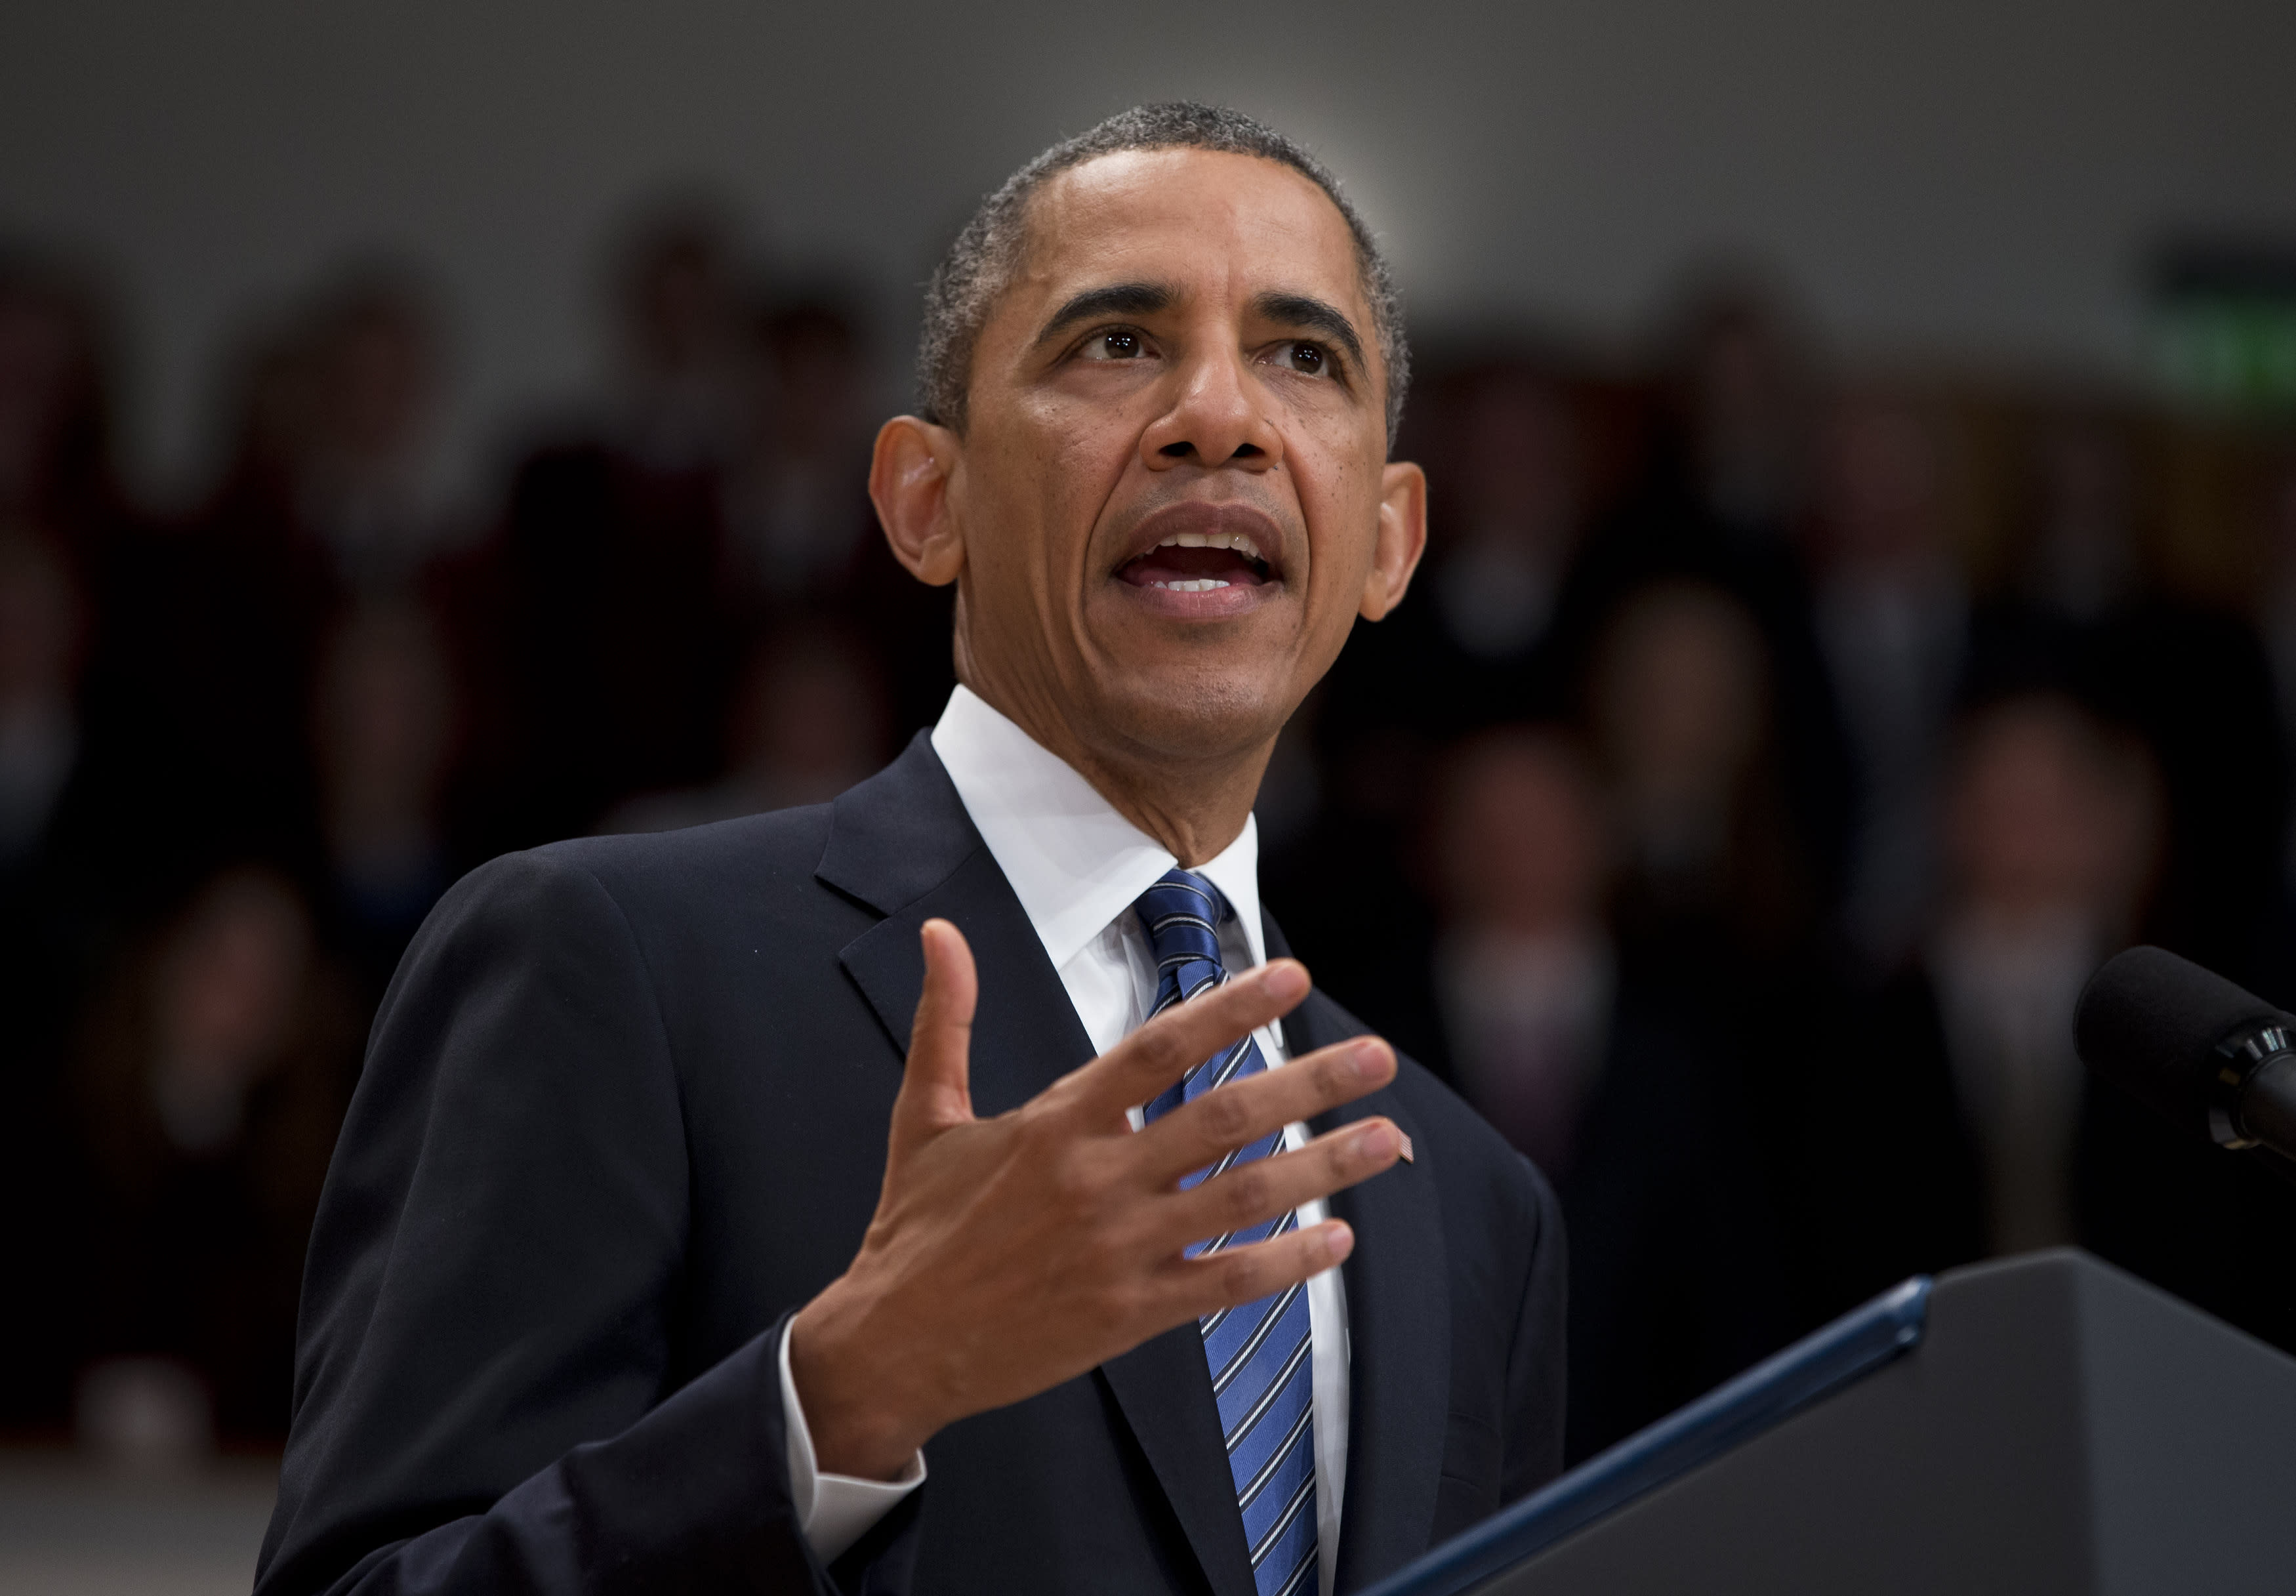 U.S. President Barack Obama gestures during a speech at the Belfast Waterfront on Monday, June 17, 2013, in Belfast, Northern Ireland. Obama is attending the G-8 summit in Enniskillen, Northern Ireland where leaders are expected to discuss the ongoing conflict in Syria, and free-trade issues. (AP Photo/Evan Vucci)